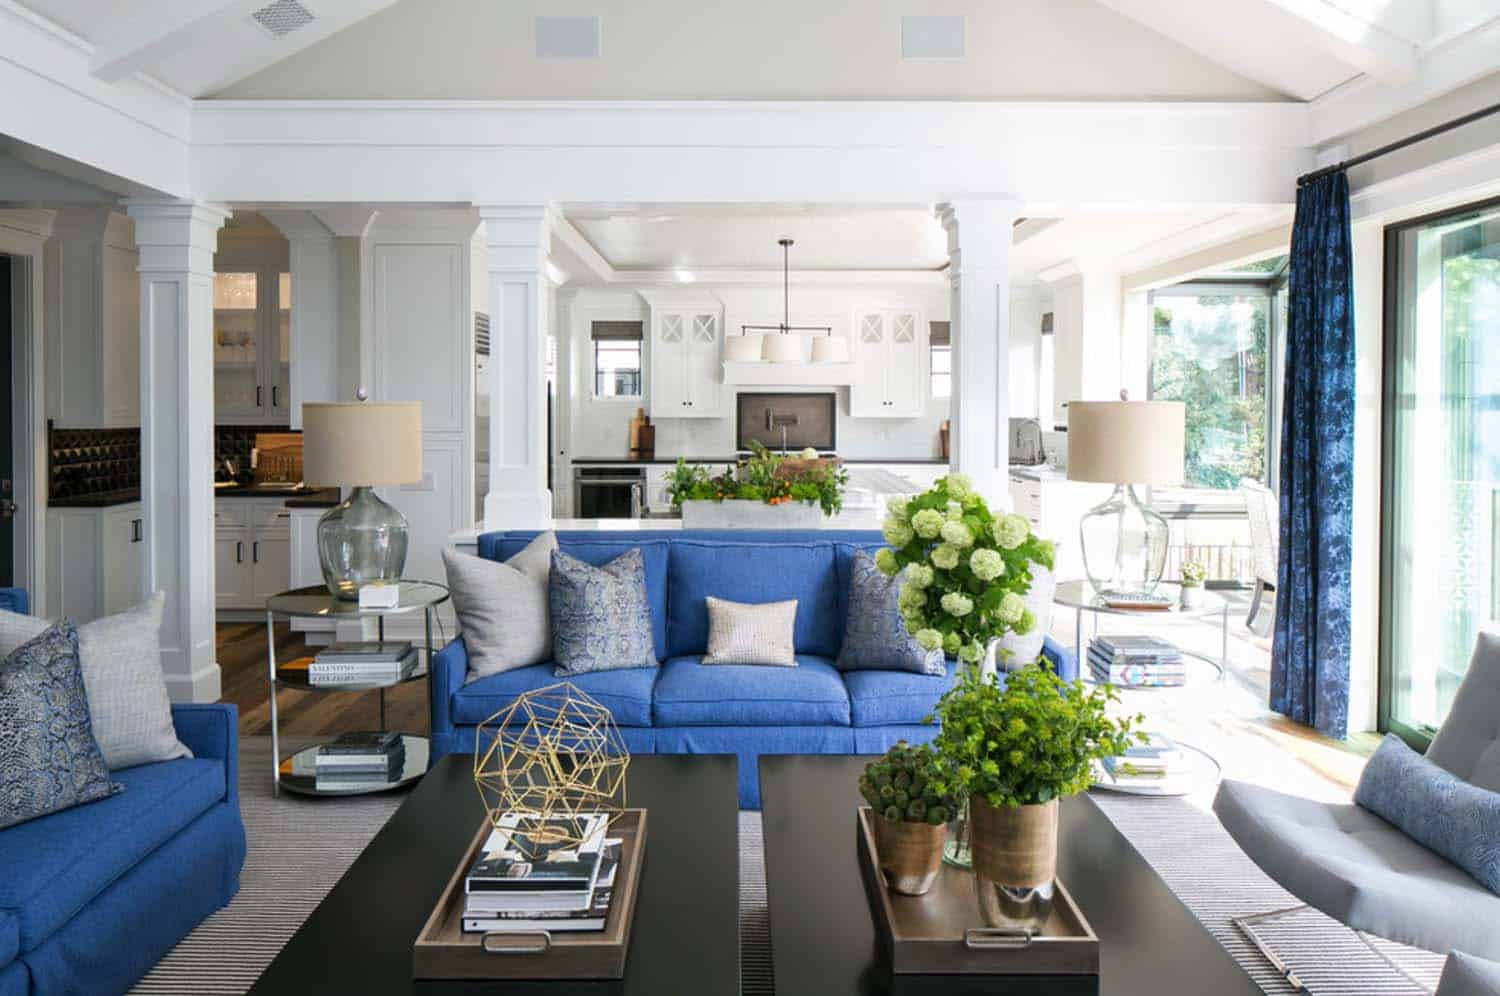 beach-style-home-brooke-wagner-design-06-1-kindesign